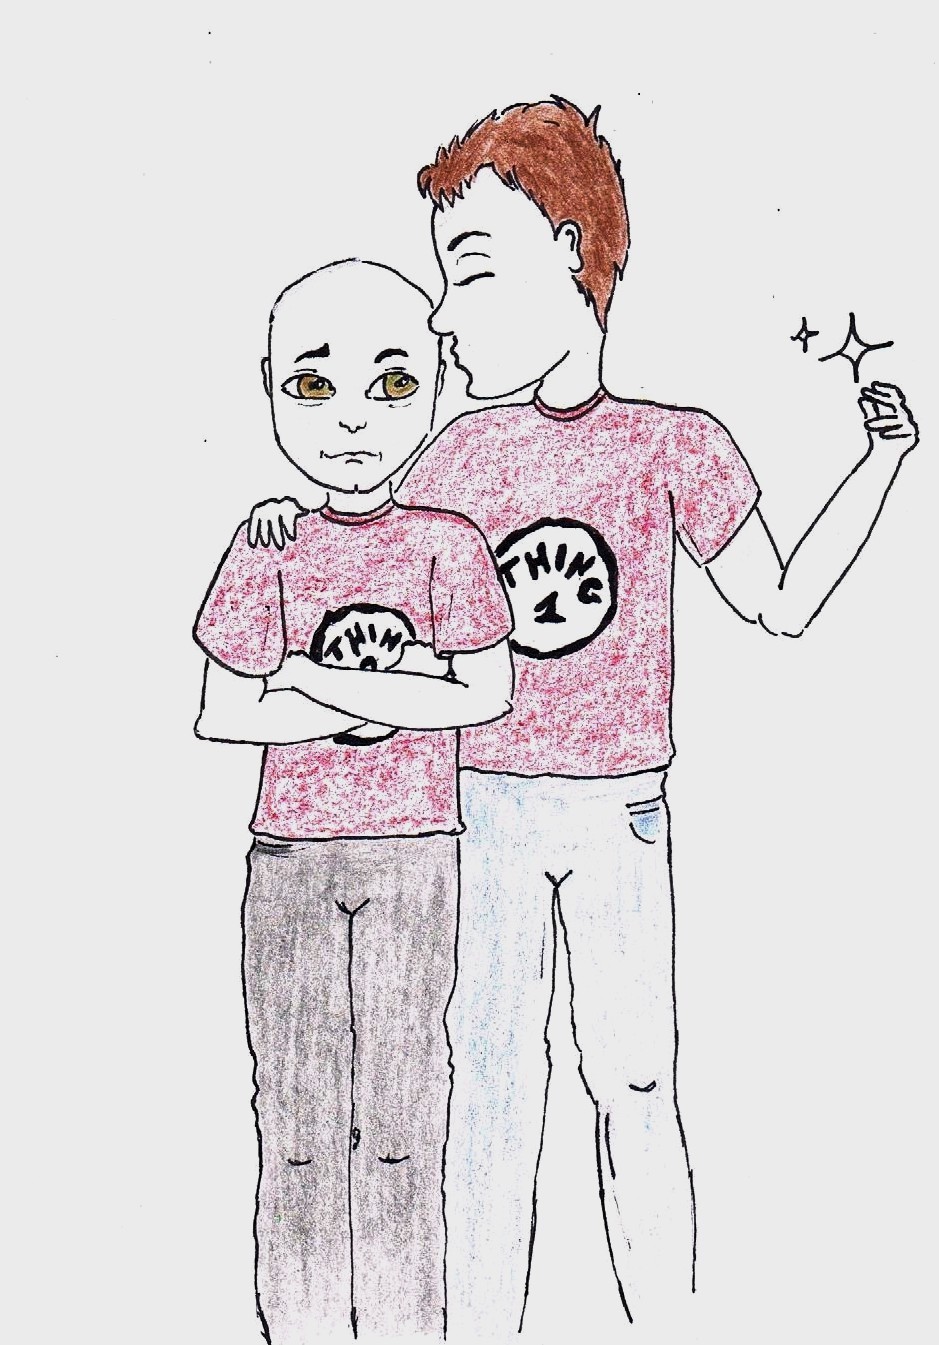 Q And Picard (aka Thing 1 and Thing 2) by killhawkeye